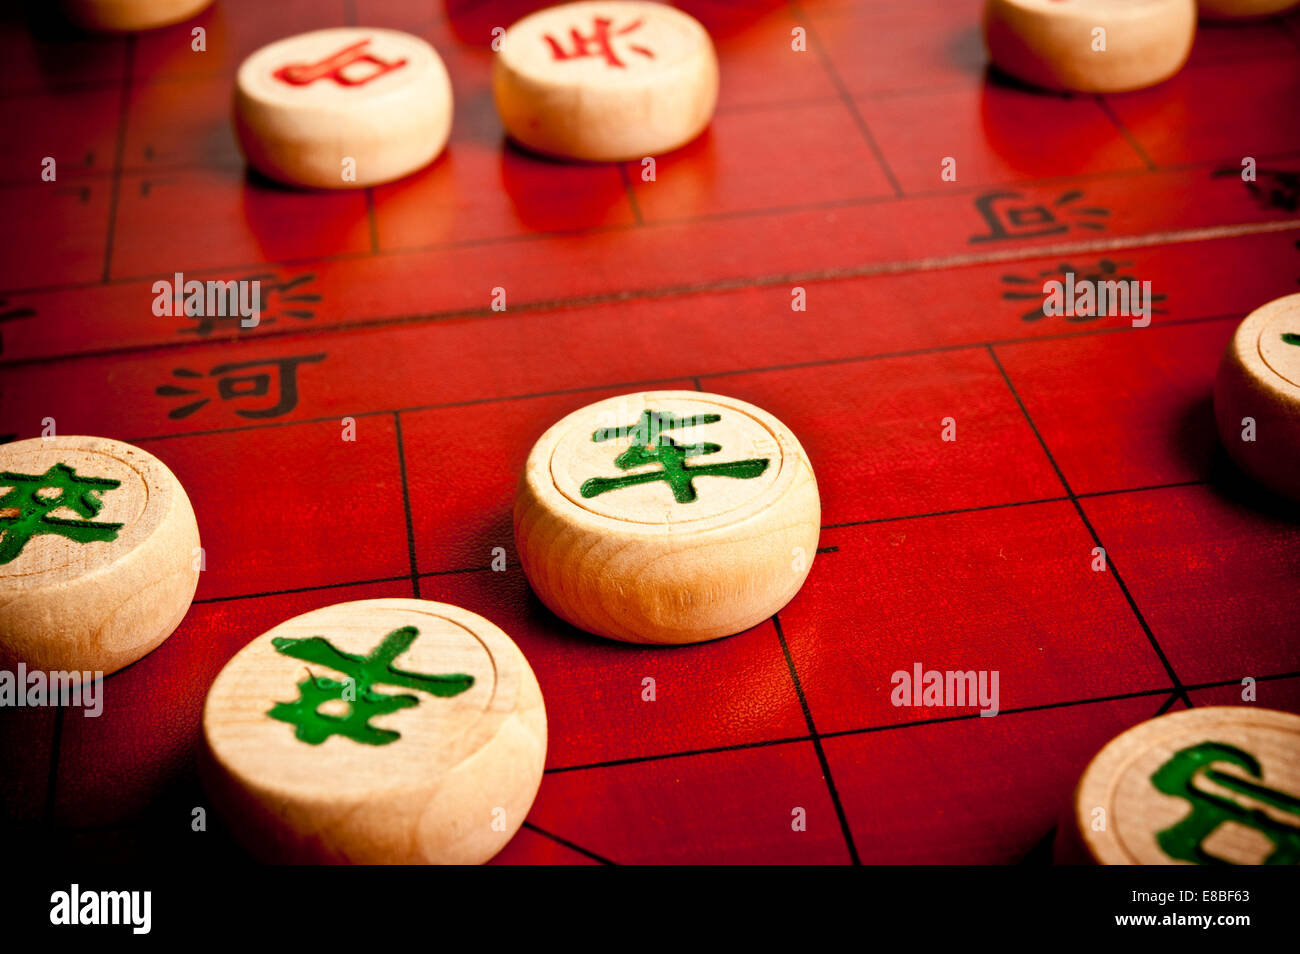 game of Xiangqi or Chinese chess - Stock Image